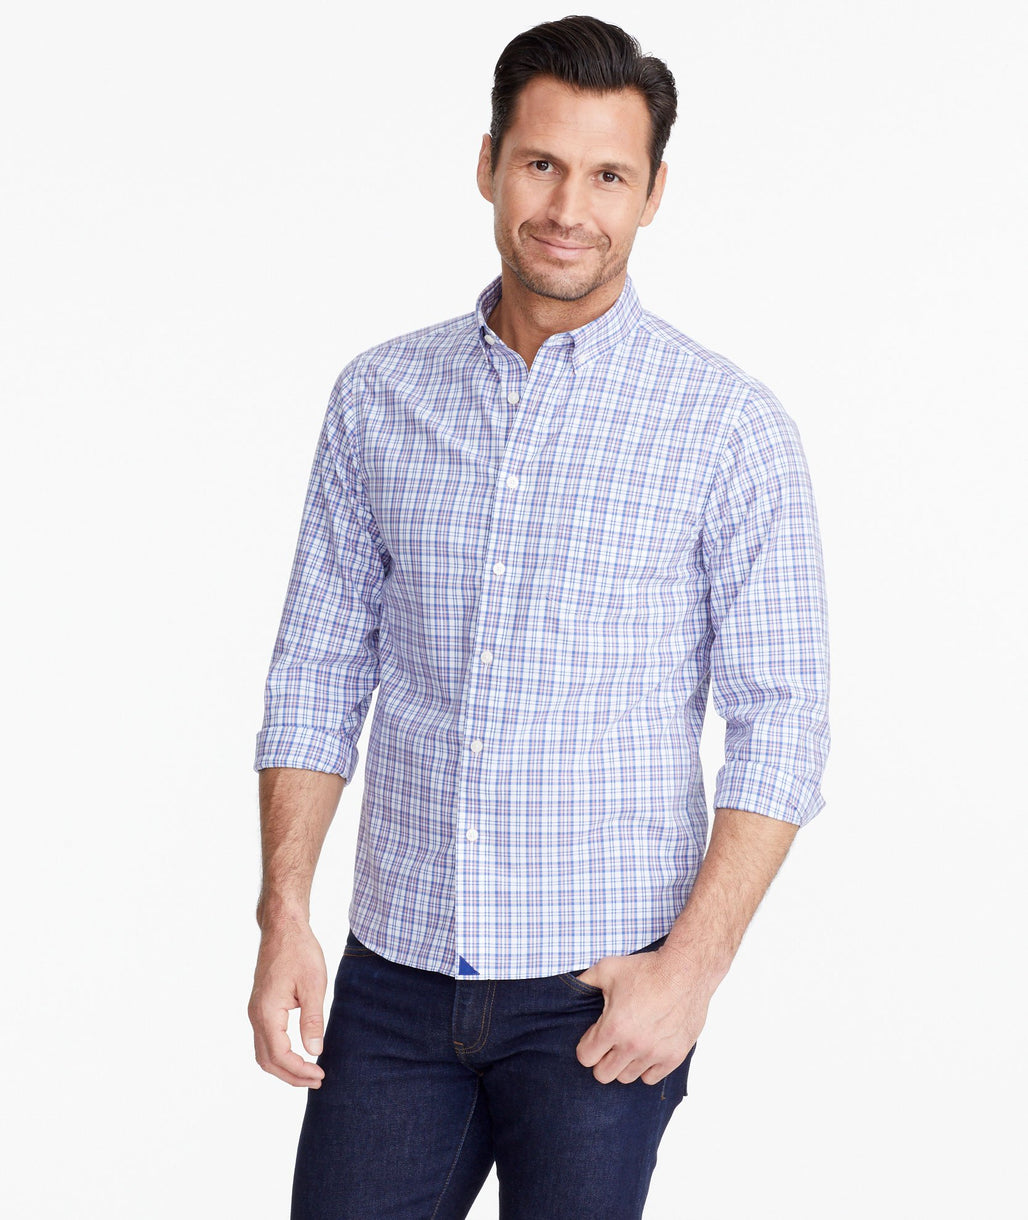 A model wearing a Blue Wrinkle-Free Andradas Shirt